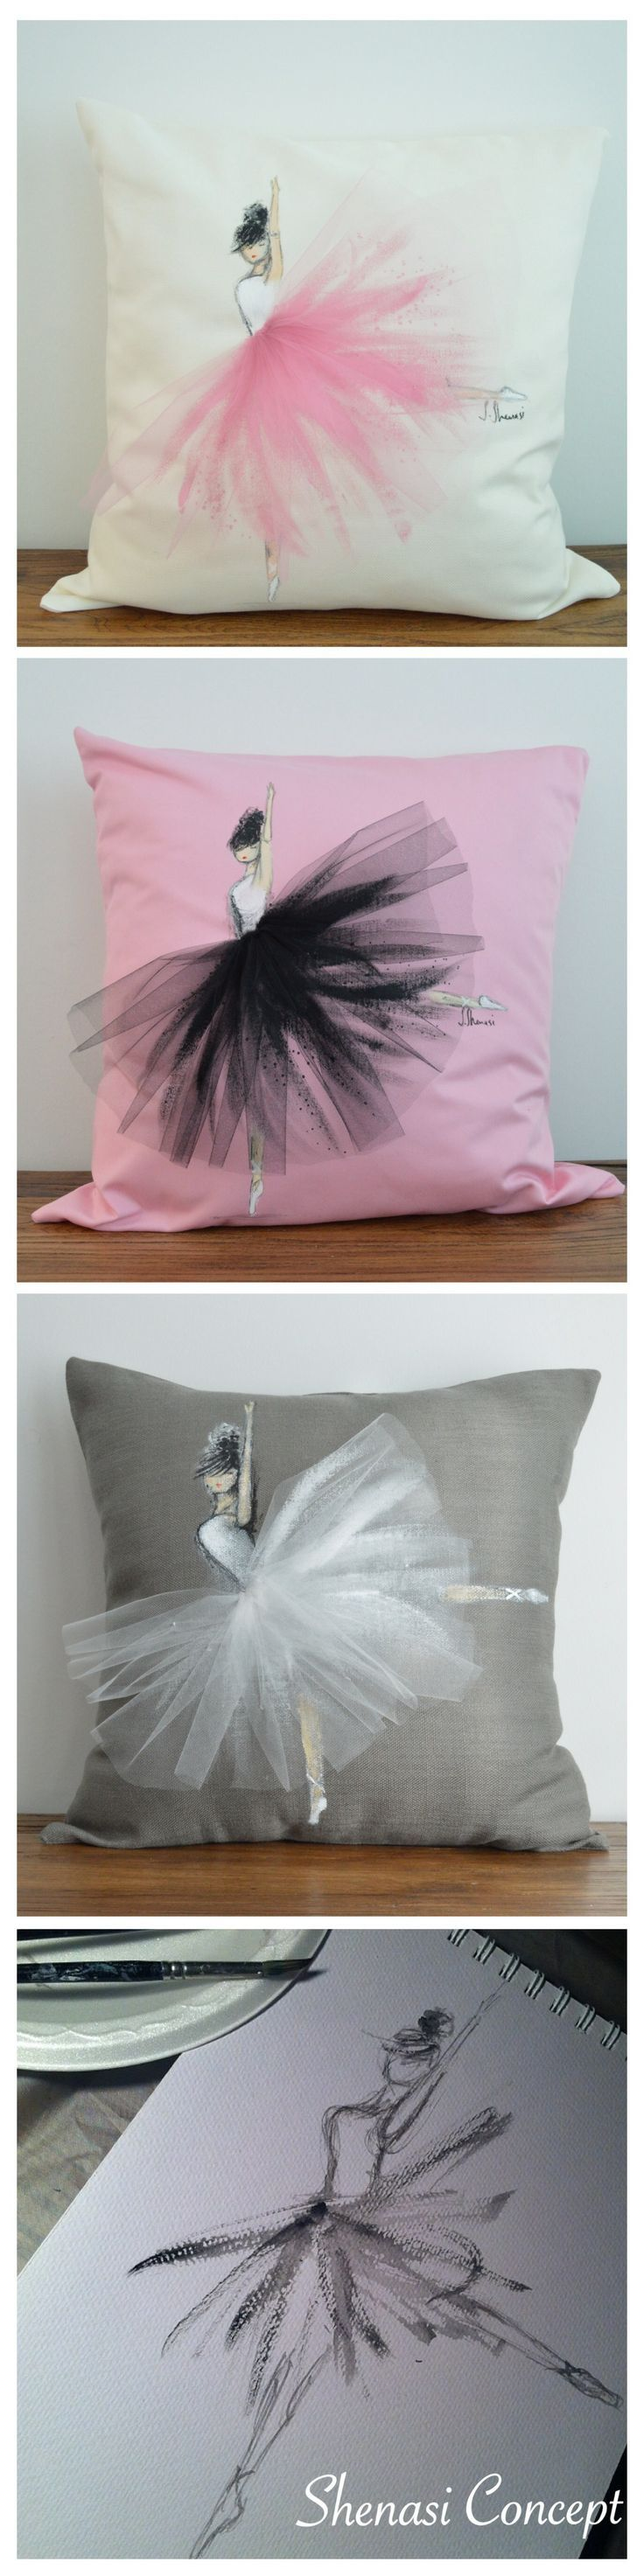 From sketch to final shenasi concept - ballerina pillow designs (scheduled via http://www.tailwindapp.com?utm_source=pinterest&utm_medium=twpin&utm_content=post89200547&utm_campaign=scheduler_attribution)